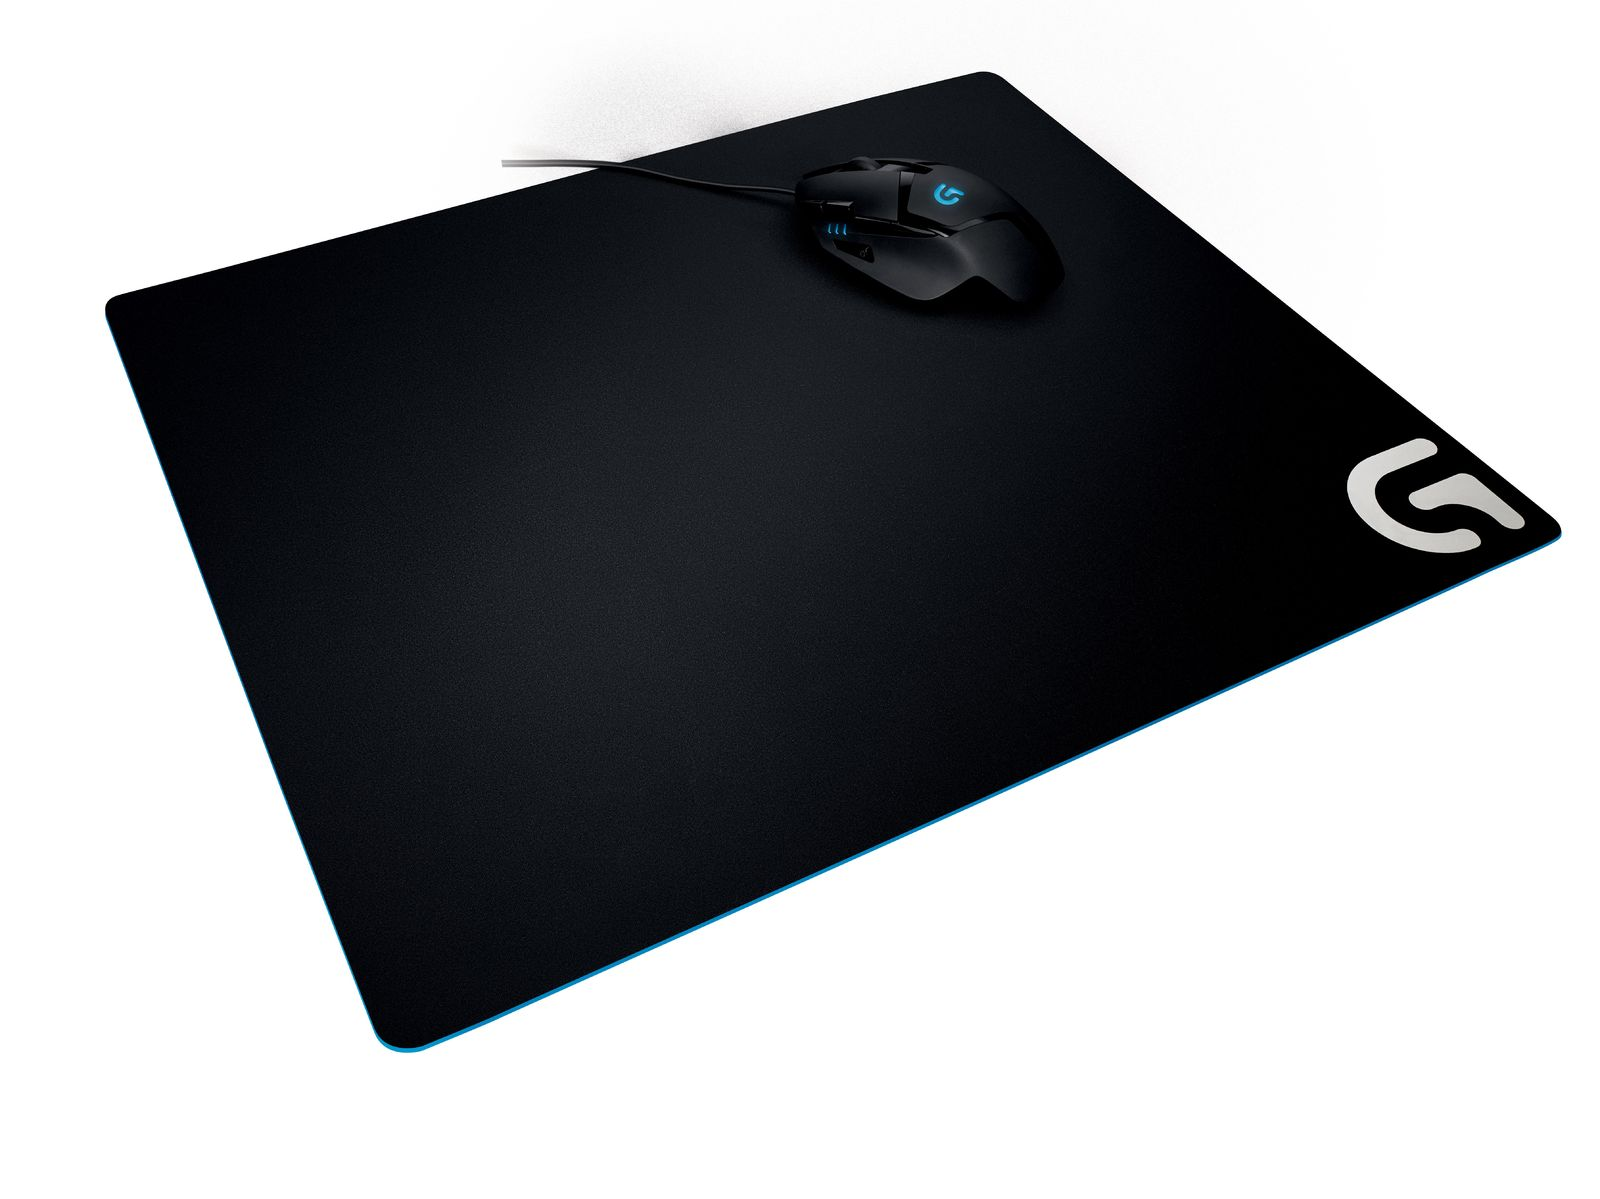 Logitech G640 Gaming Mouse Mat for  image